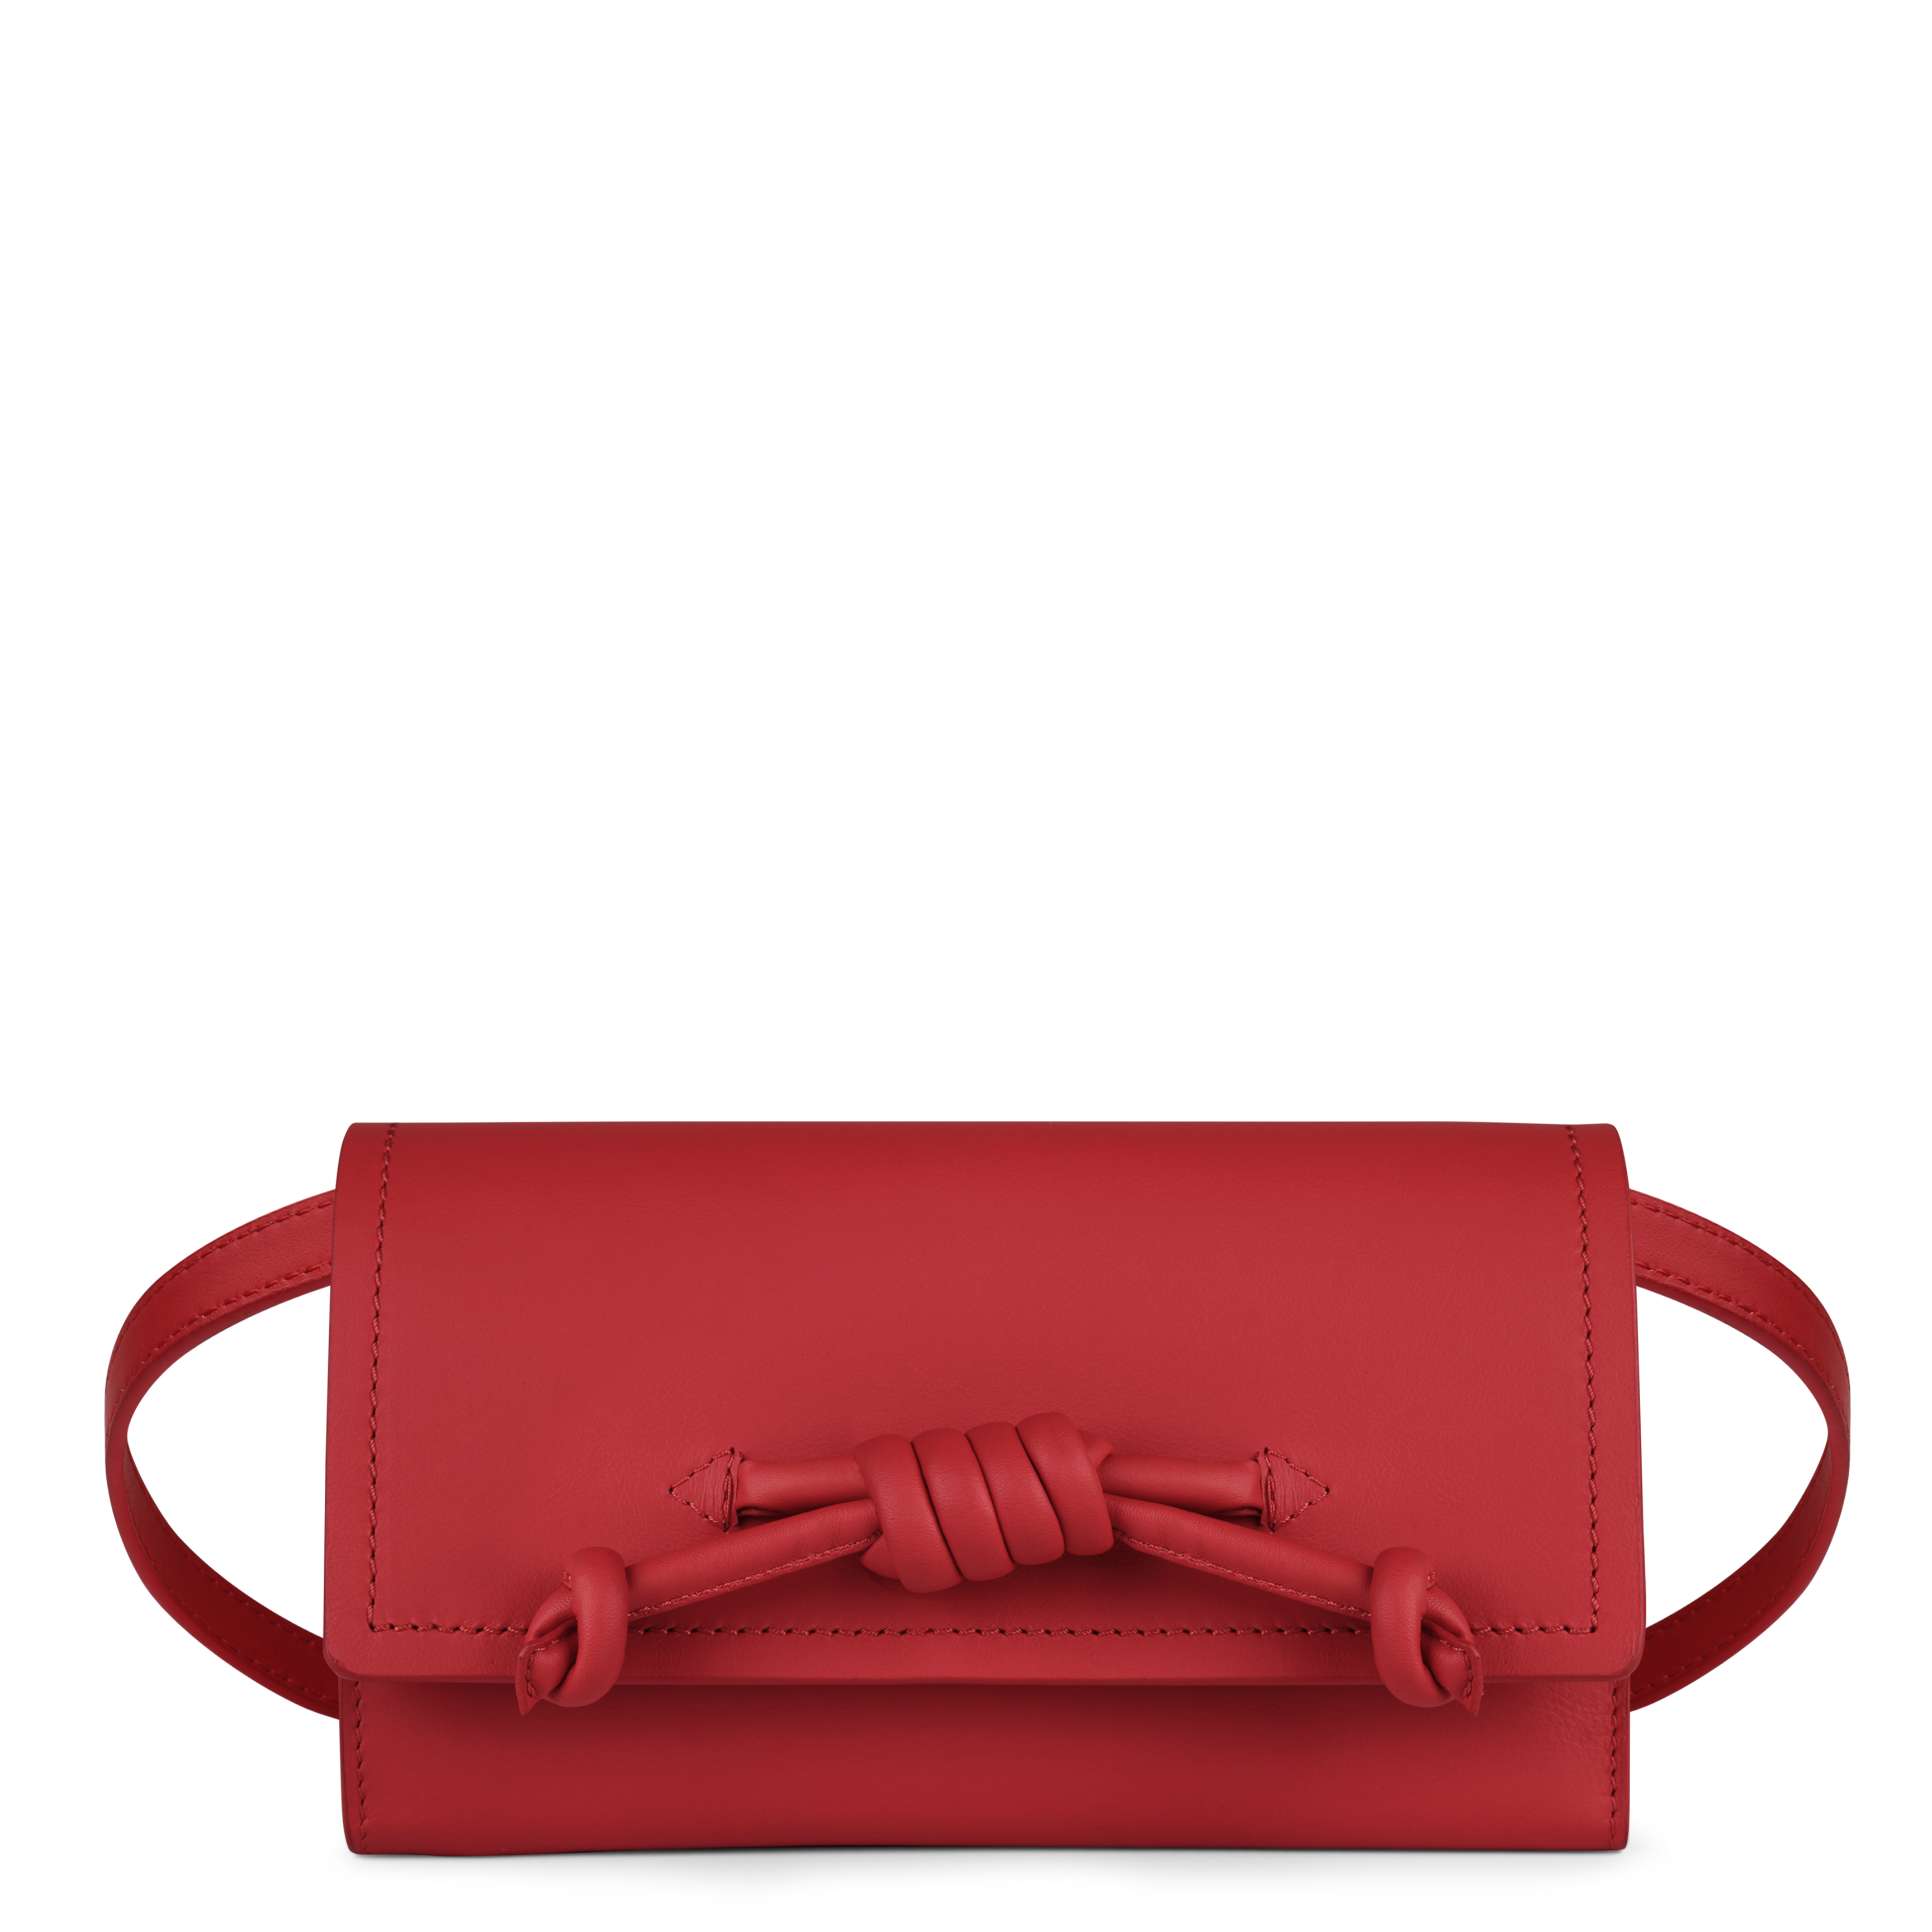 Soho Cross-body Bag by Esin Akan on curated-crowd.com